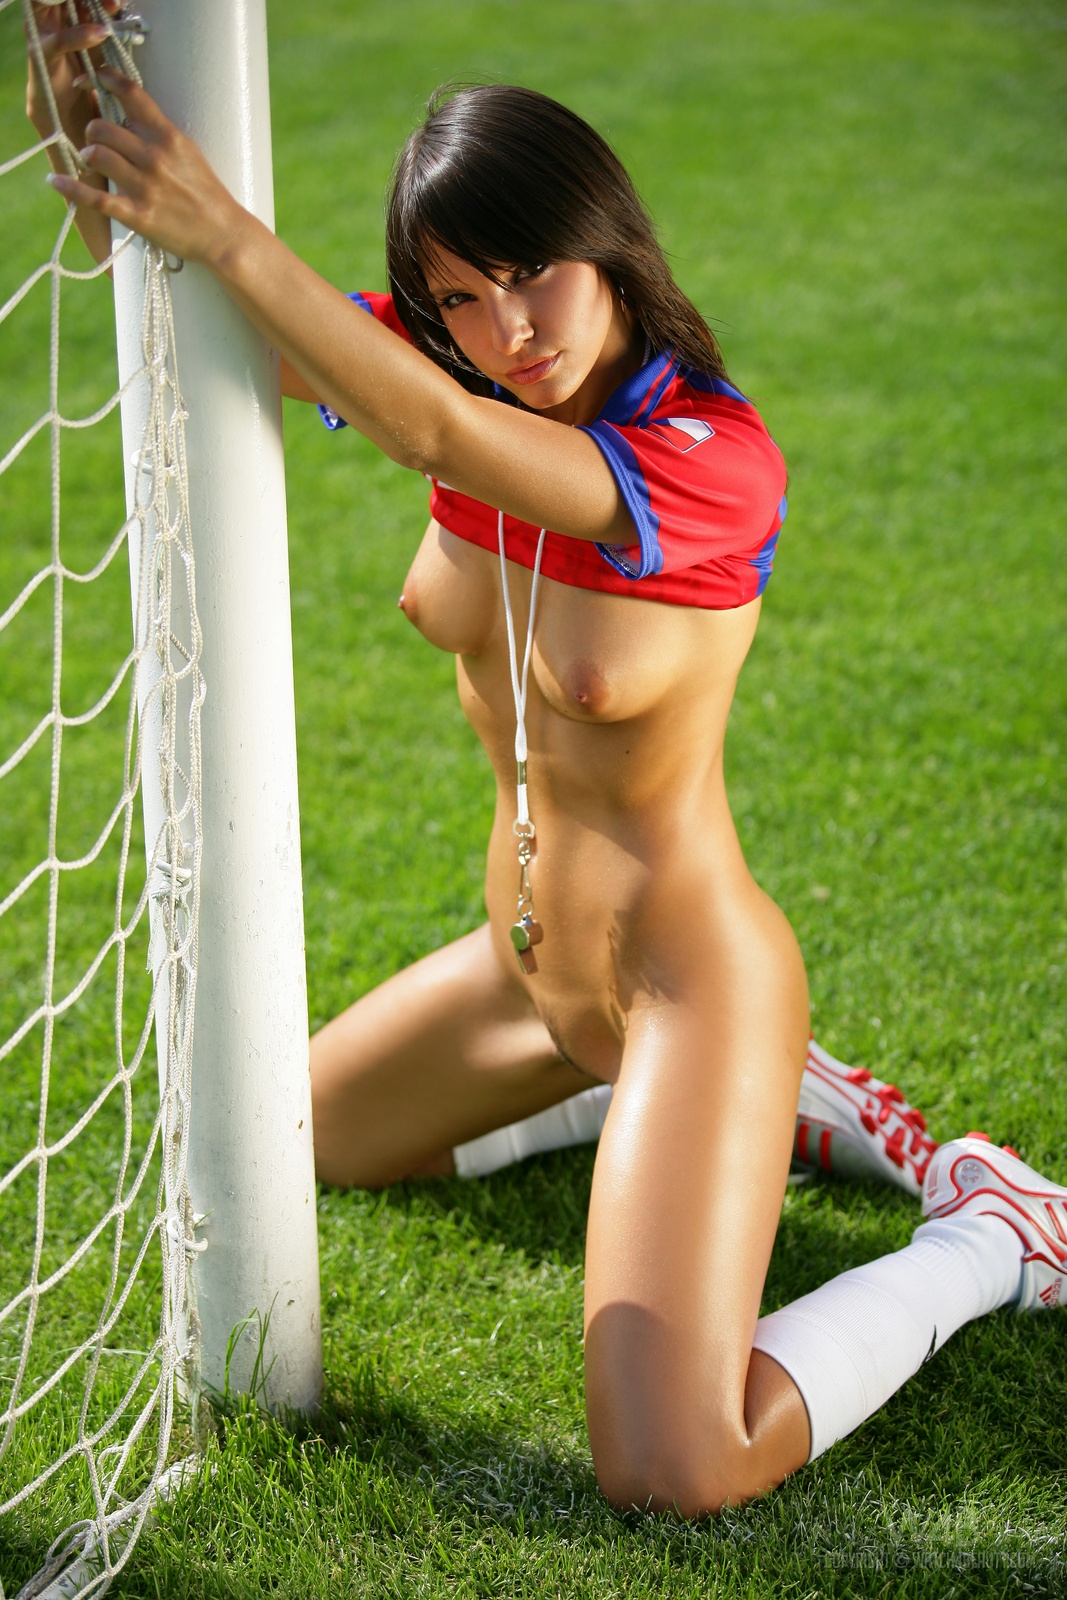 Erotic football player girl — pic 10